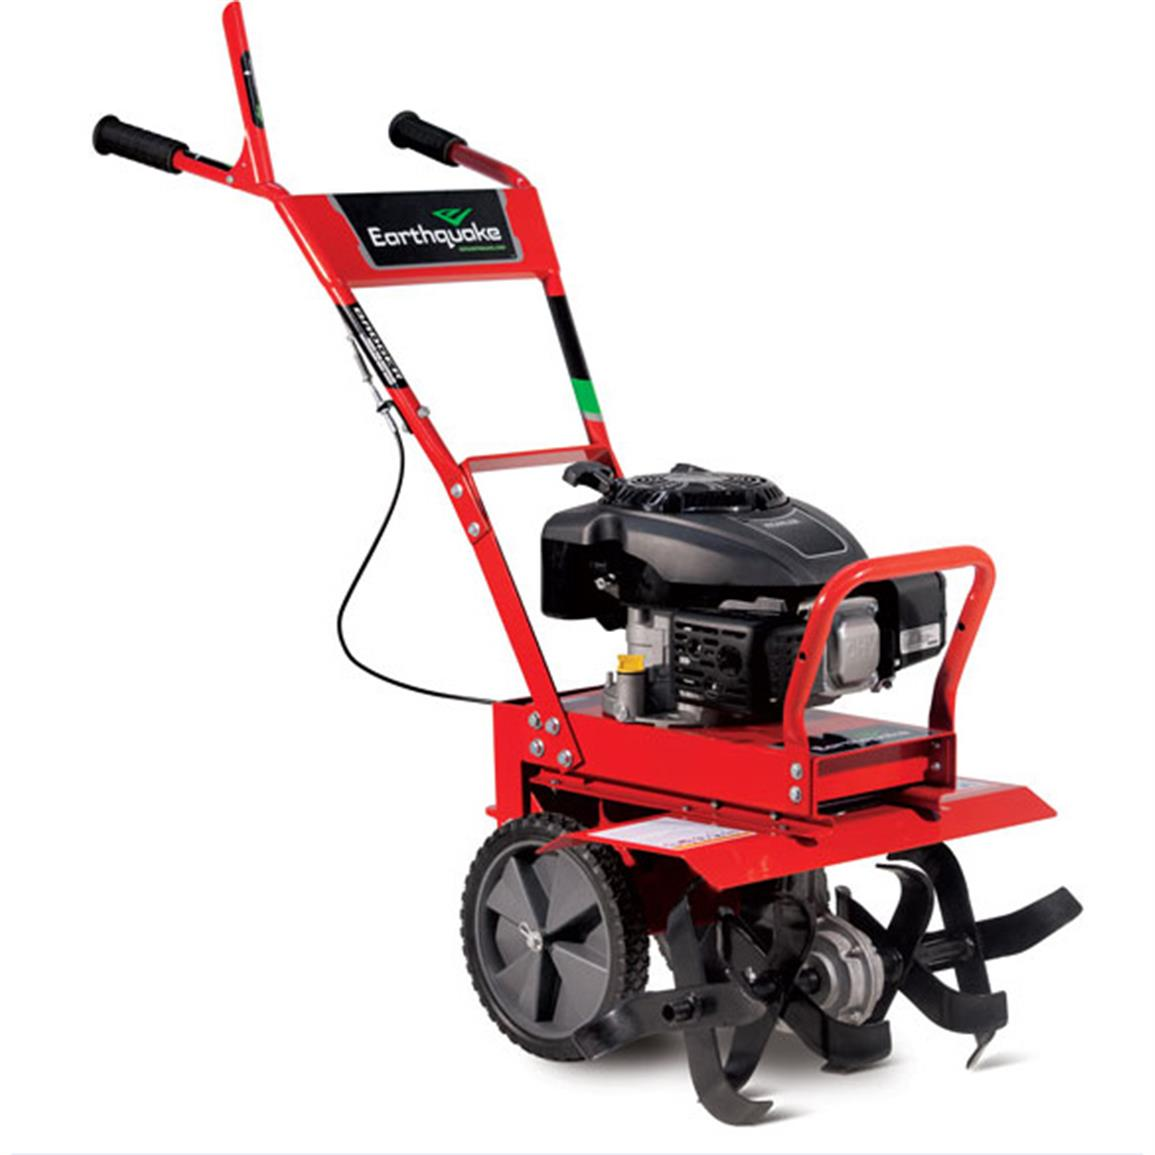 Earthquake Badger Full Size Front Tine Rototiller 662981 Earth Augers Tillers Cultivators